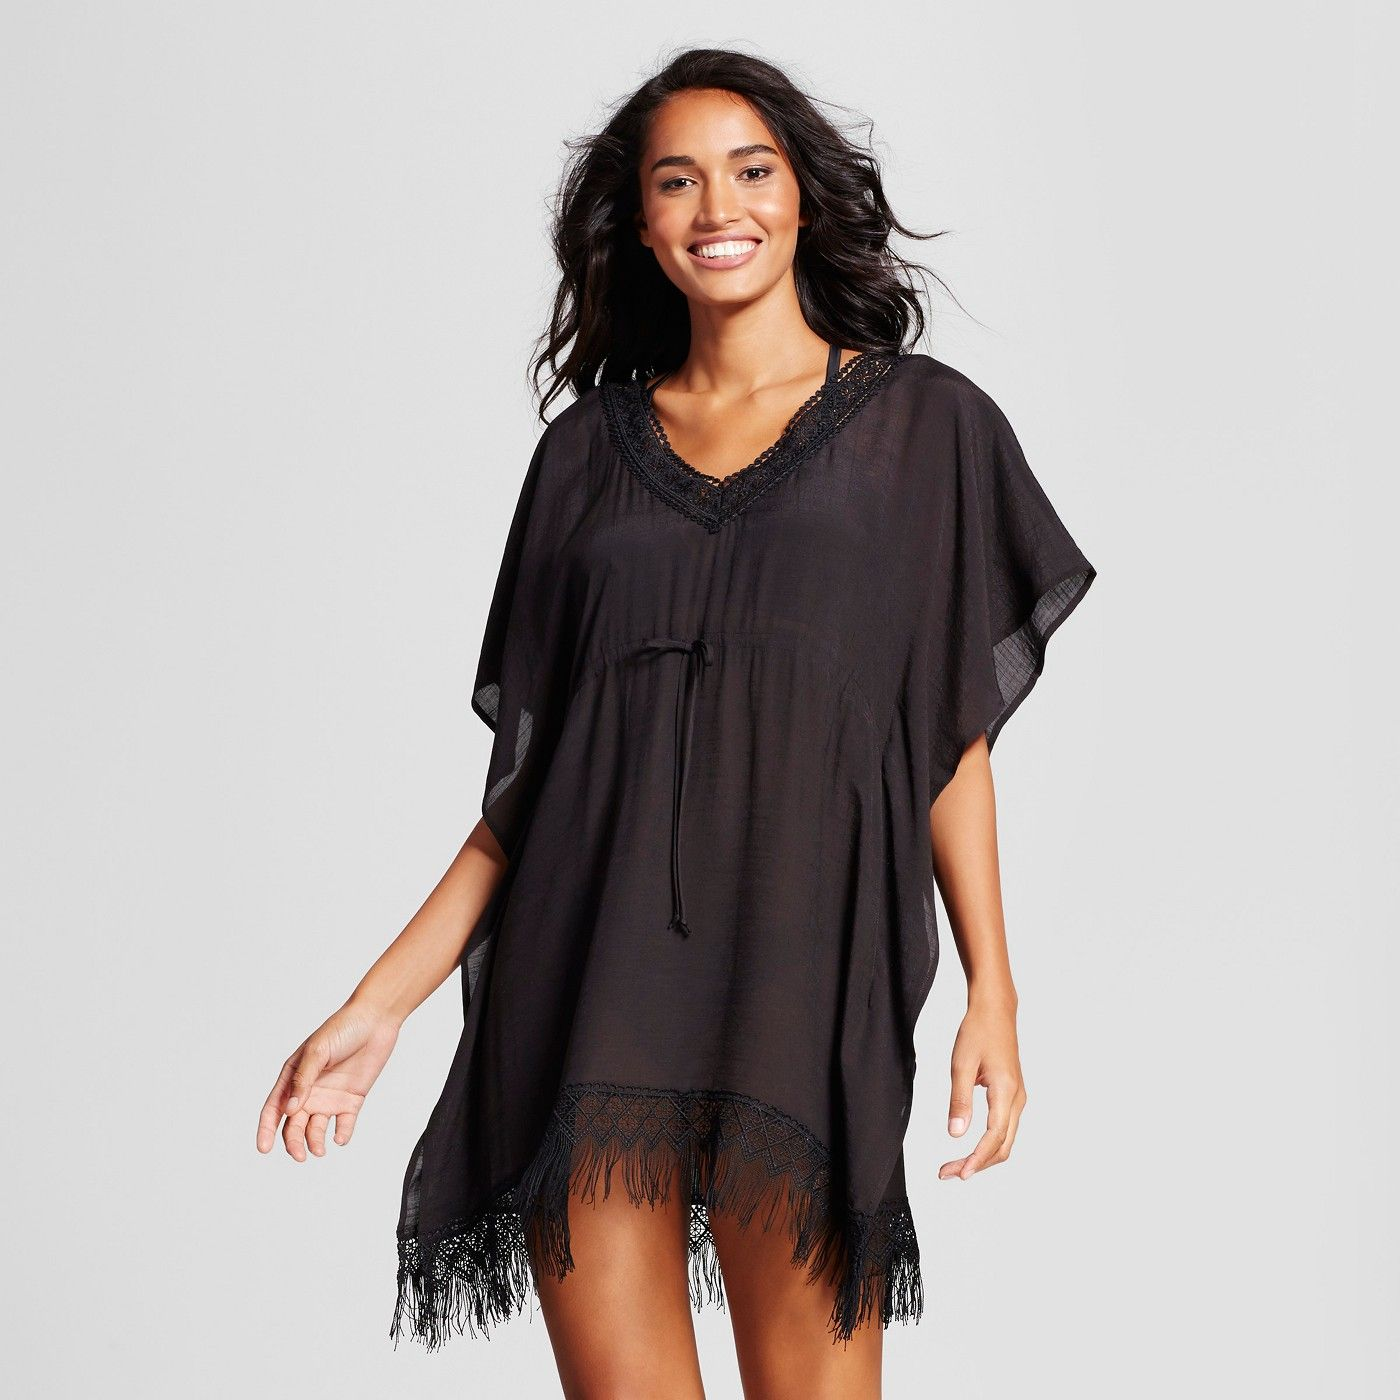 4a84e0e7cde7 orderedCover 2 Cover Women's Fringe Poncho Cover Up Dress - Black S : Target